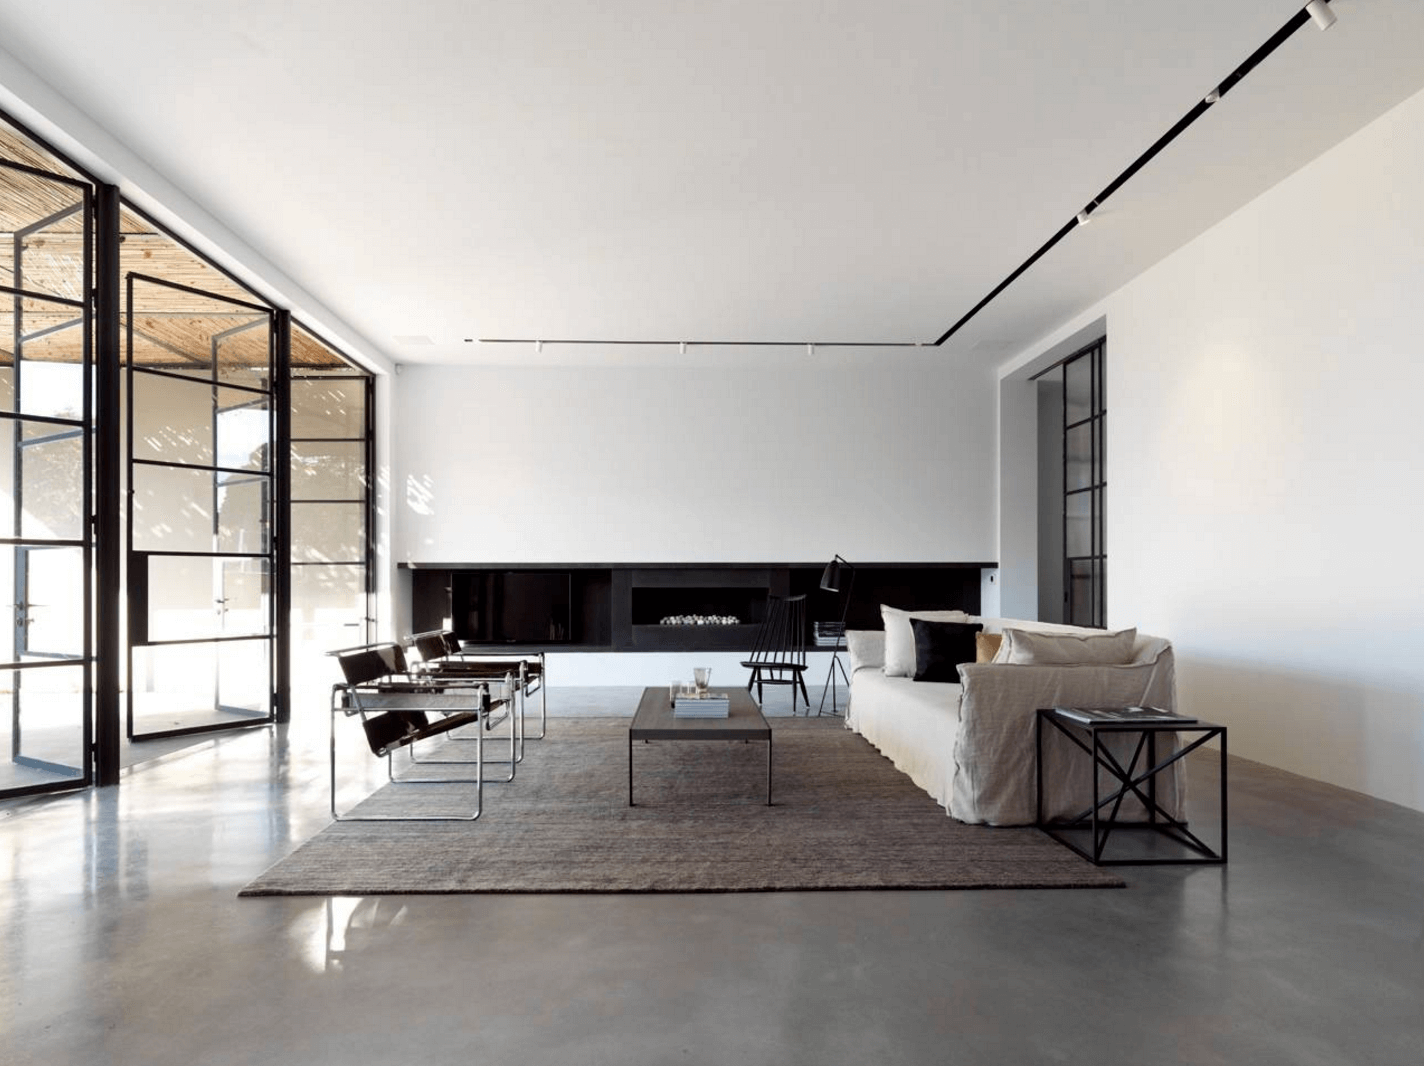 25 Examples of Minimalism in Interior Design - Freshome